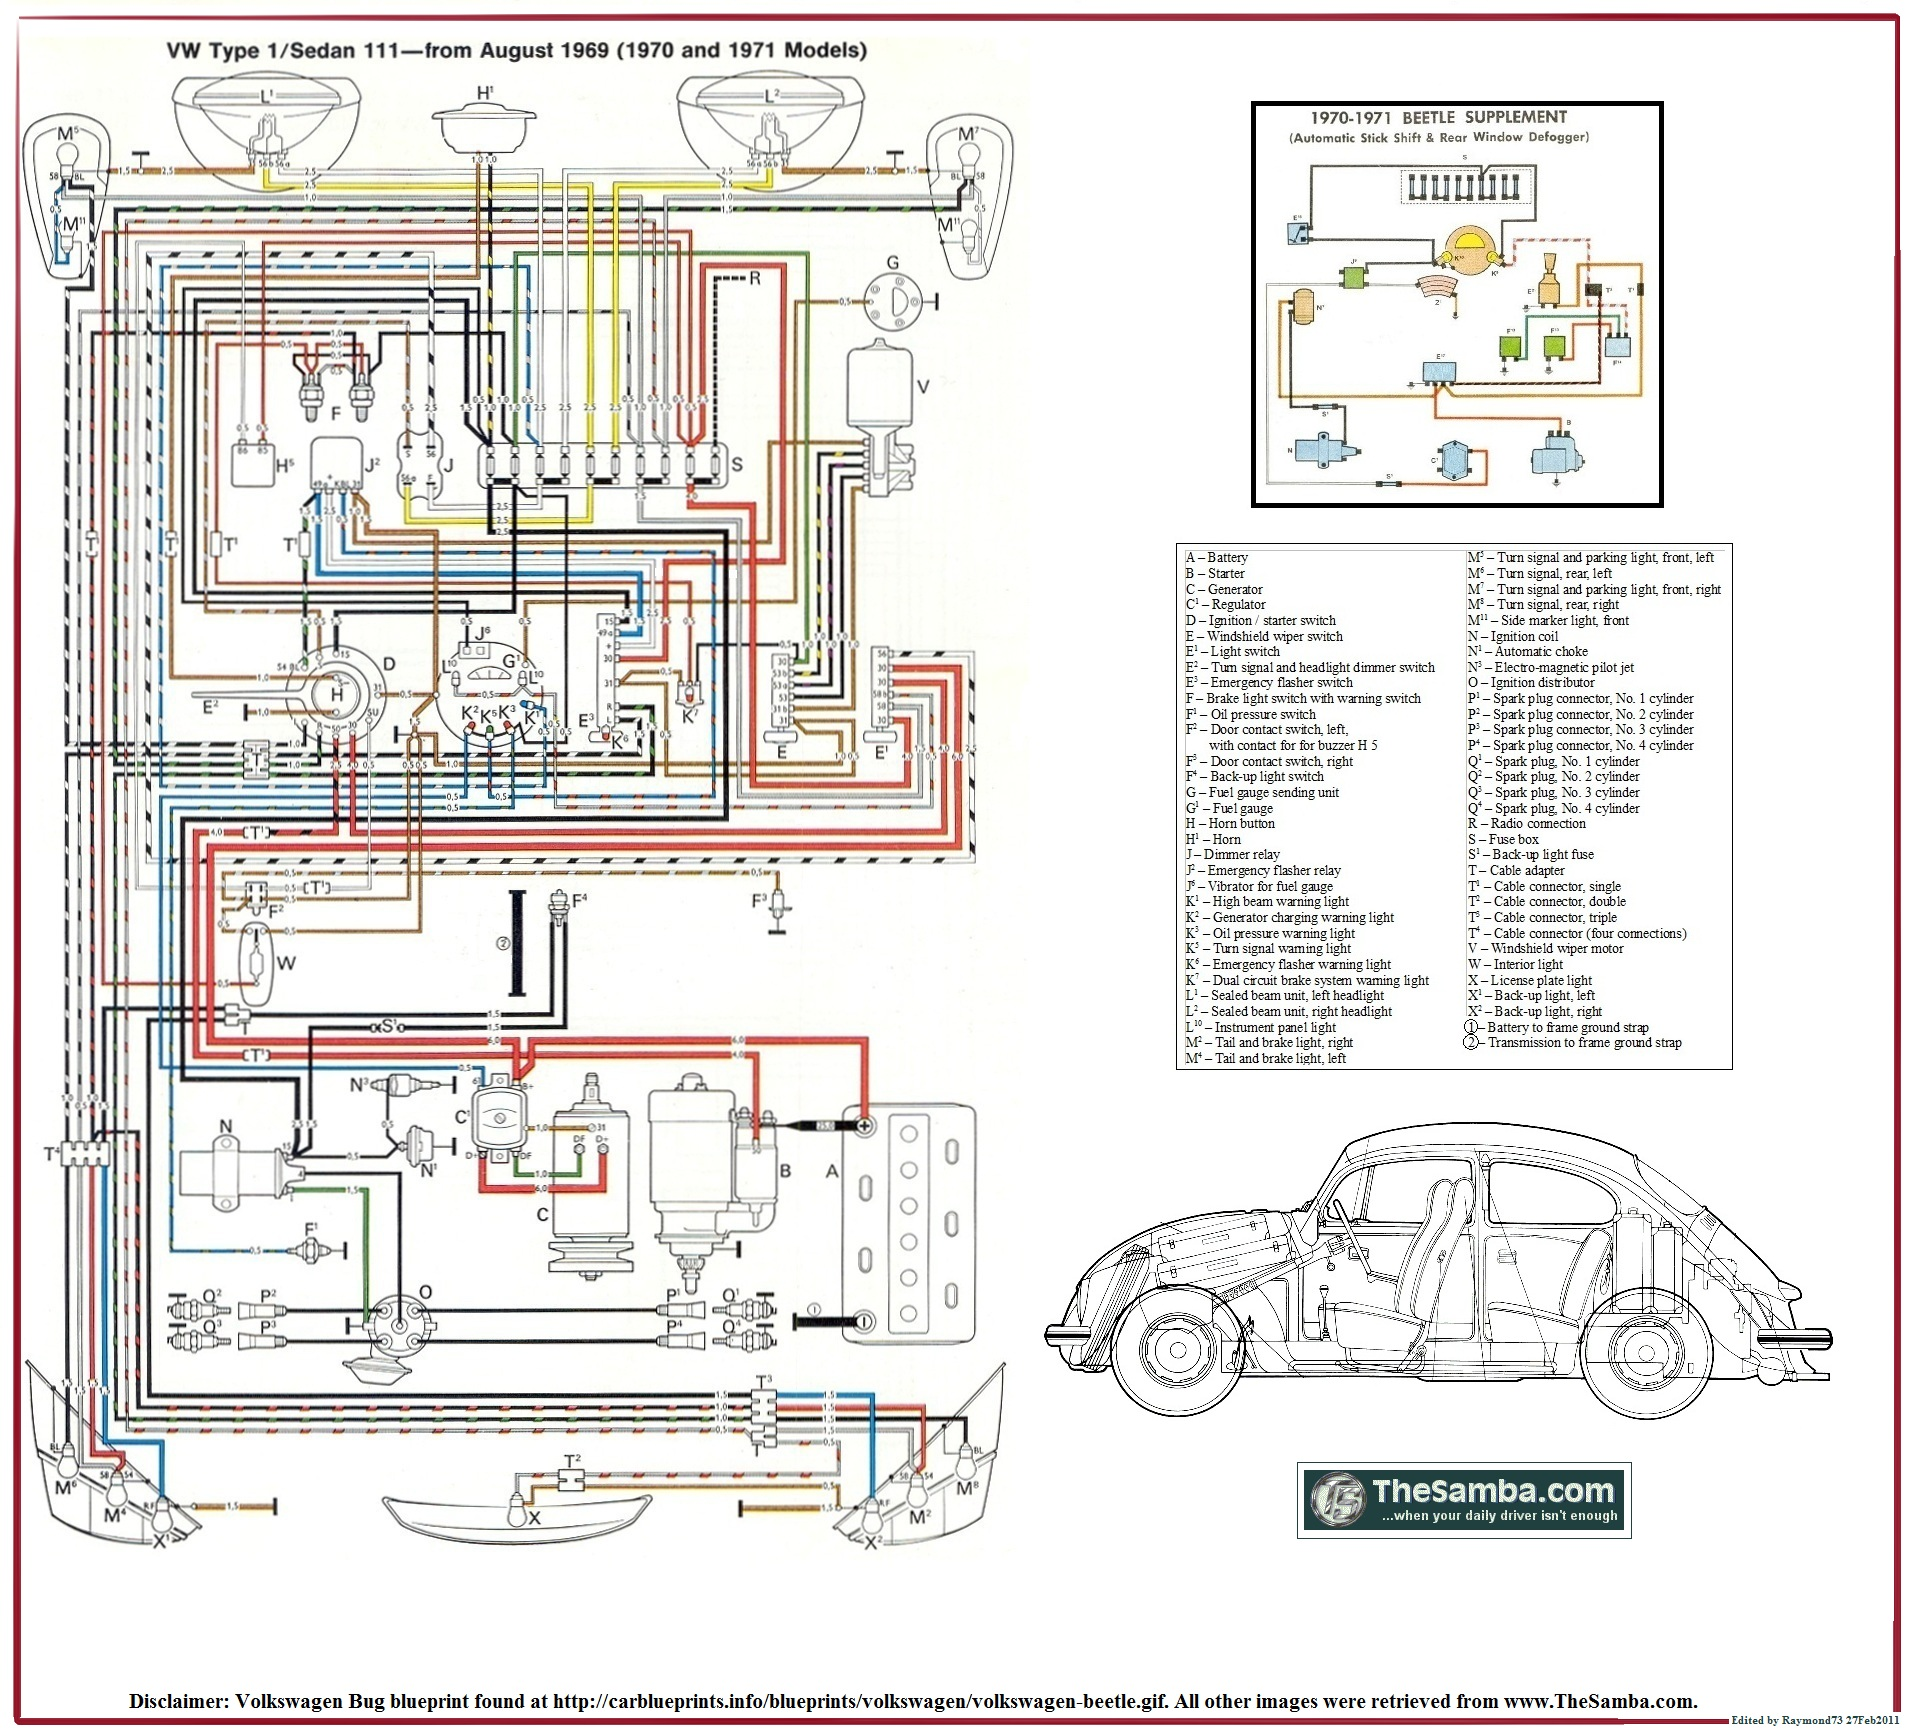 1970_VW_Type_1_Poster thesamba com beetle late model super 1968 up view topic vw bug wiring diagram at bayanpartner.co